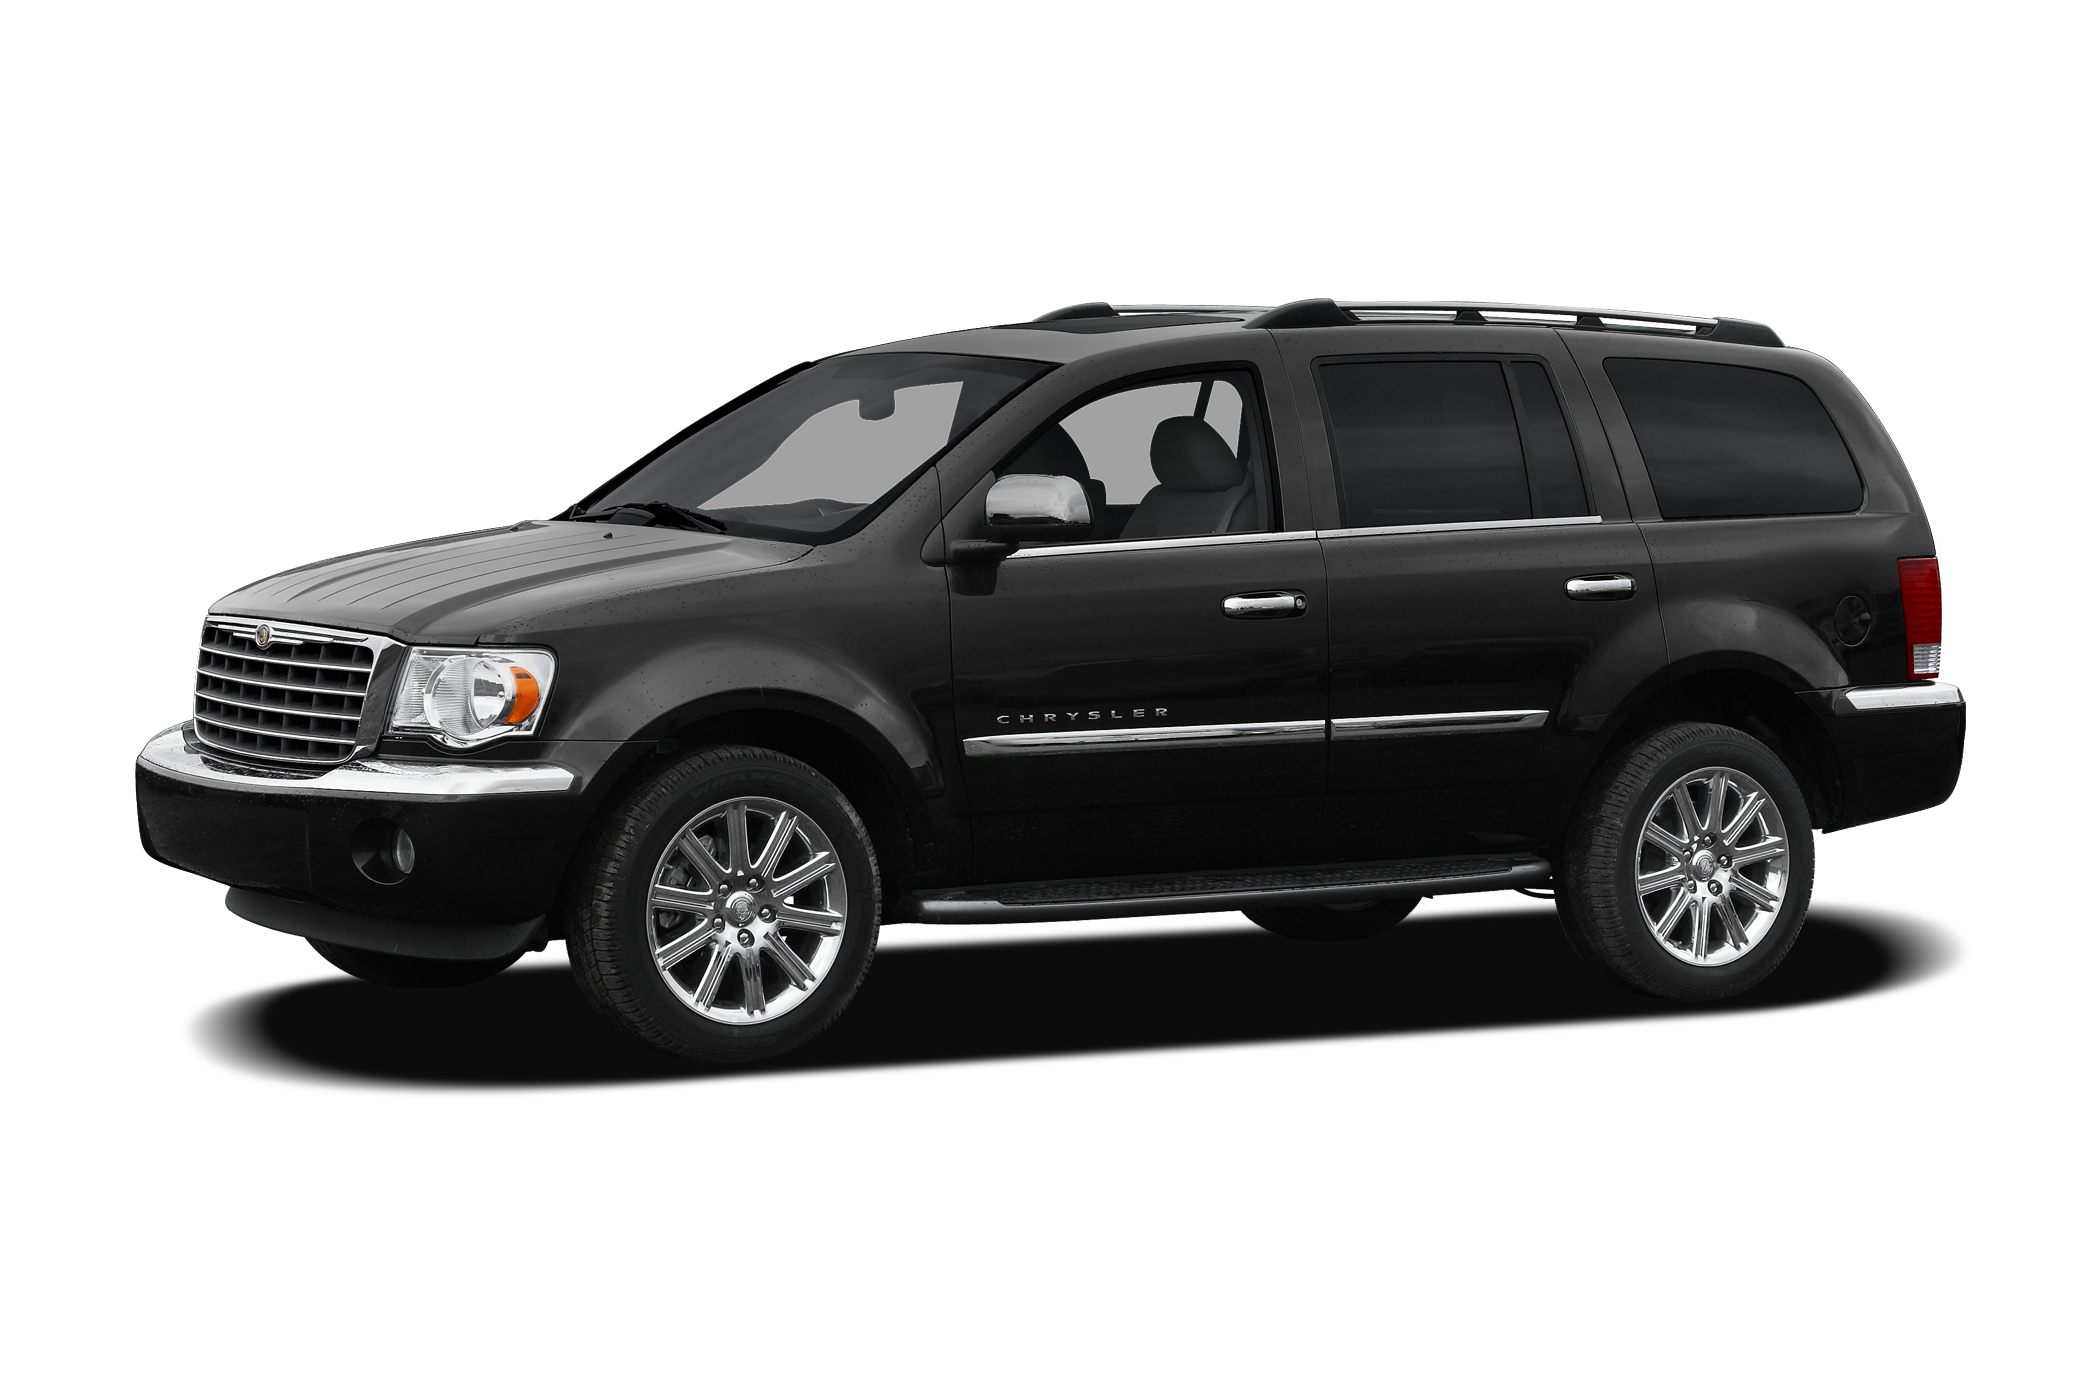 2007 Chrysler Aspen Limited SUV for sale in Circleville for $0 with 93,780 miles